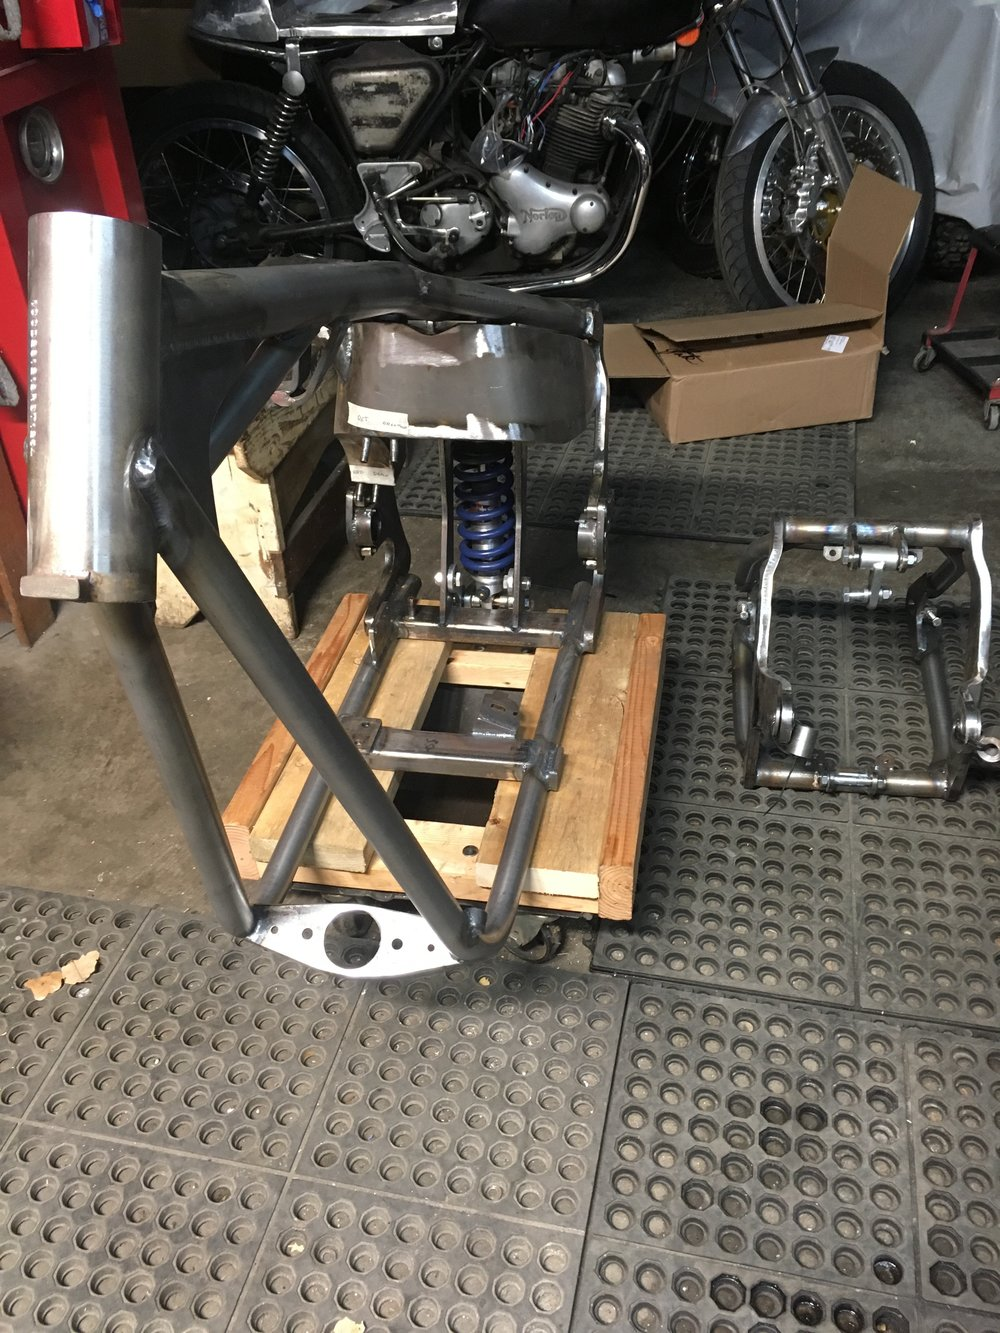 The frame came with an MSO (Manufacturer's Statement of Origination) and a VIN stamp, so it should be easy to register. The swingarm uses spherical bearings and is as beefy as the rest of the frame.